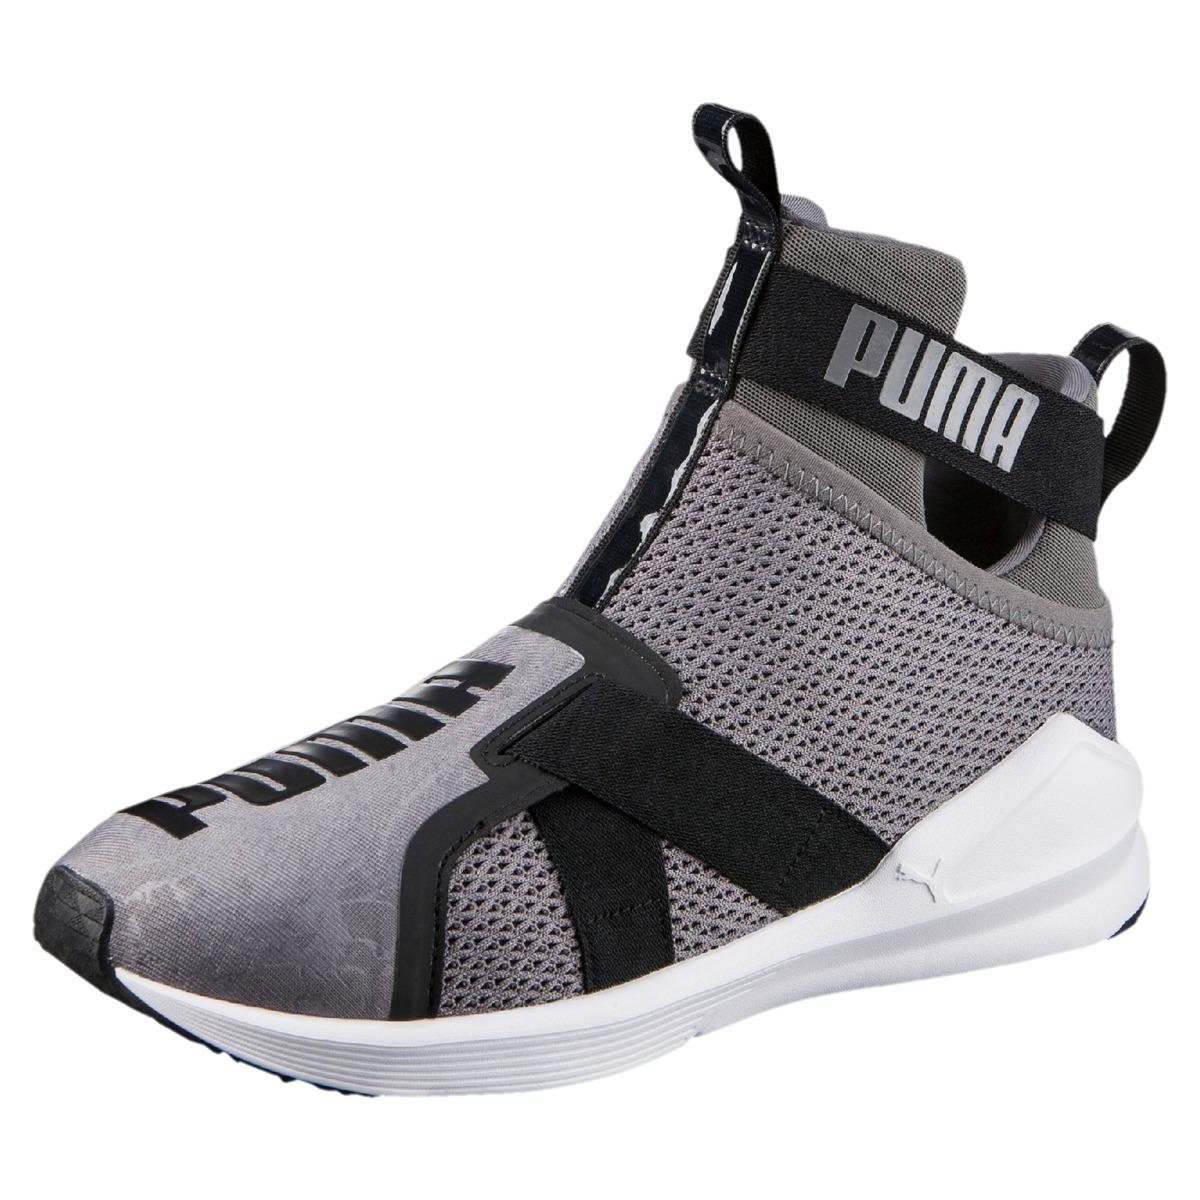 86a1a10520b Lyst - PUMA Fierce Strap Quiet Shade Fitness cross Training Shoes in ...